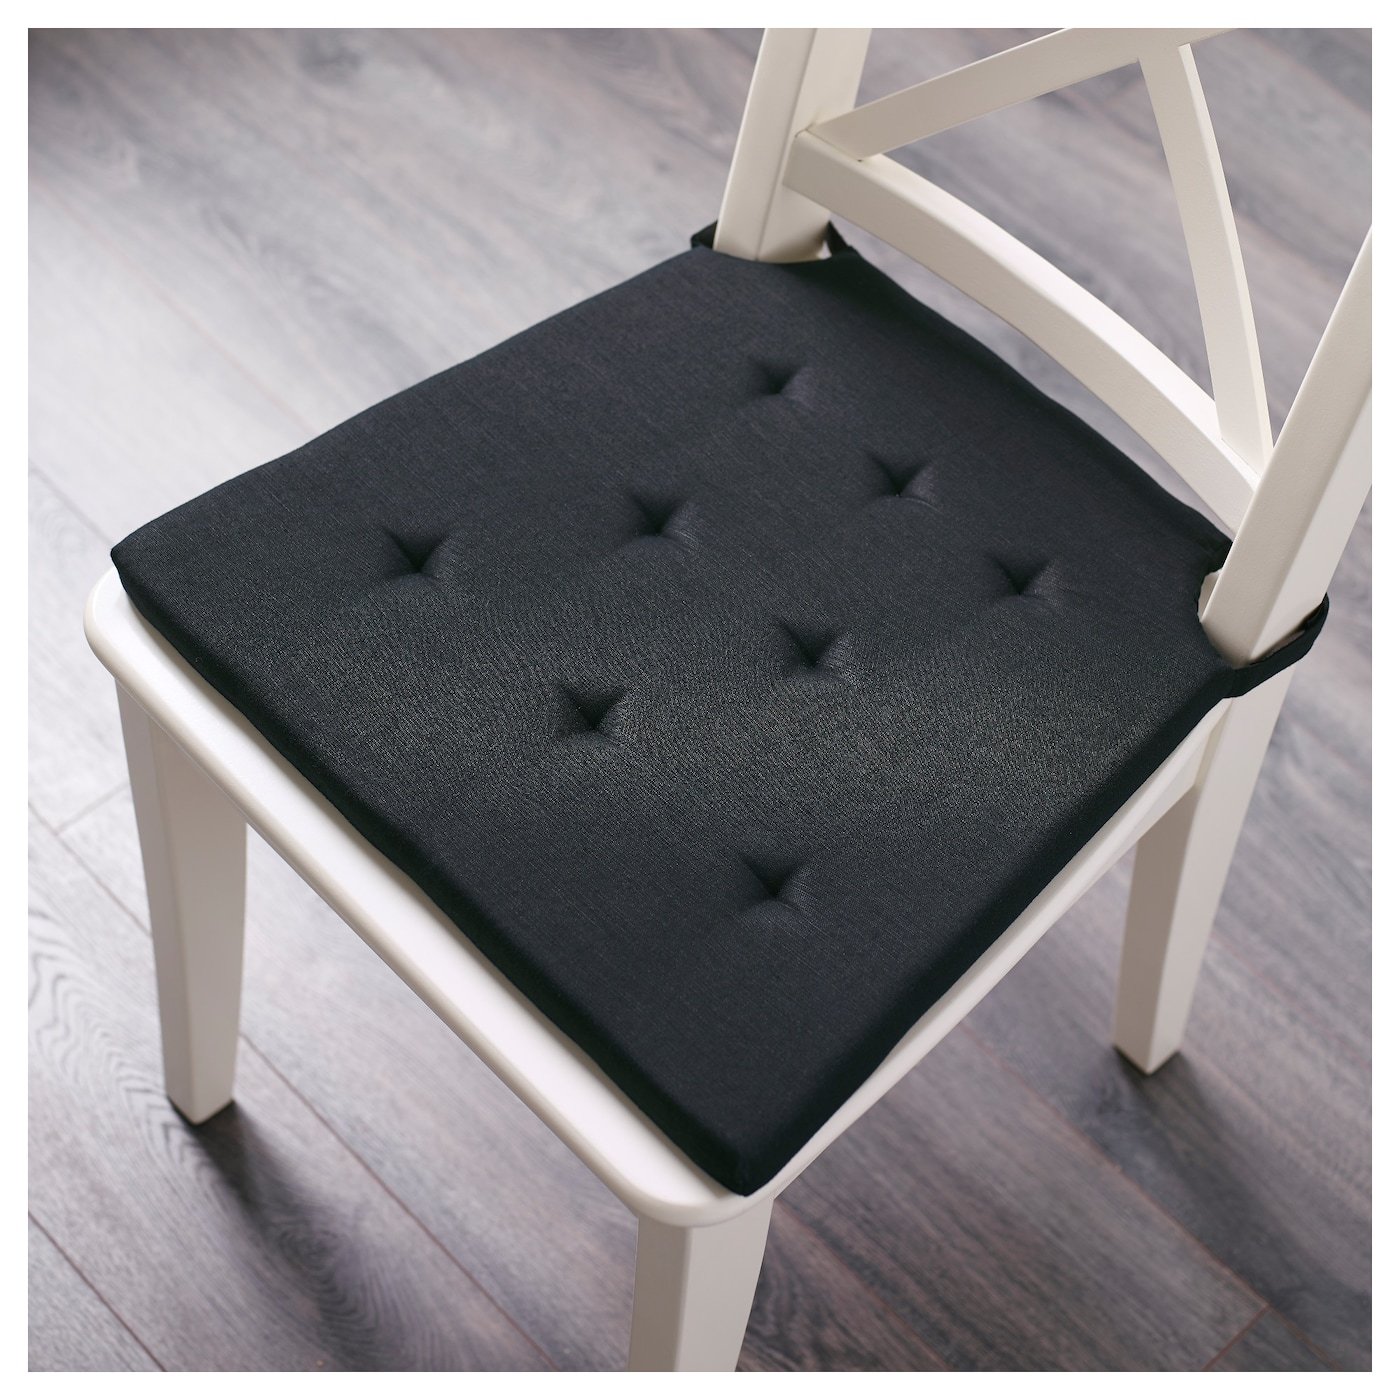 Chair Pad For Kitchen Sunbrella Outdoor Pads Dining Room  : admete chair pad black0406565pe567167s5 from www.hargapass.com size 2000 x 2000 jpeg 771kB